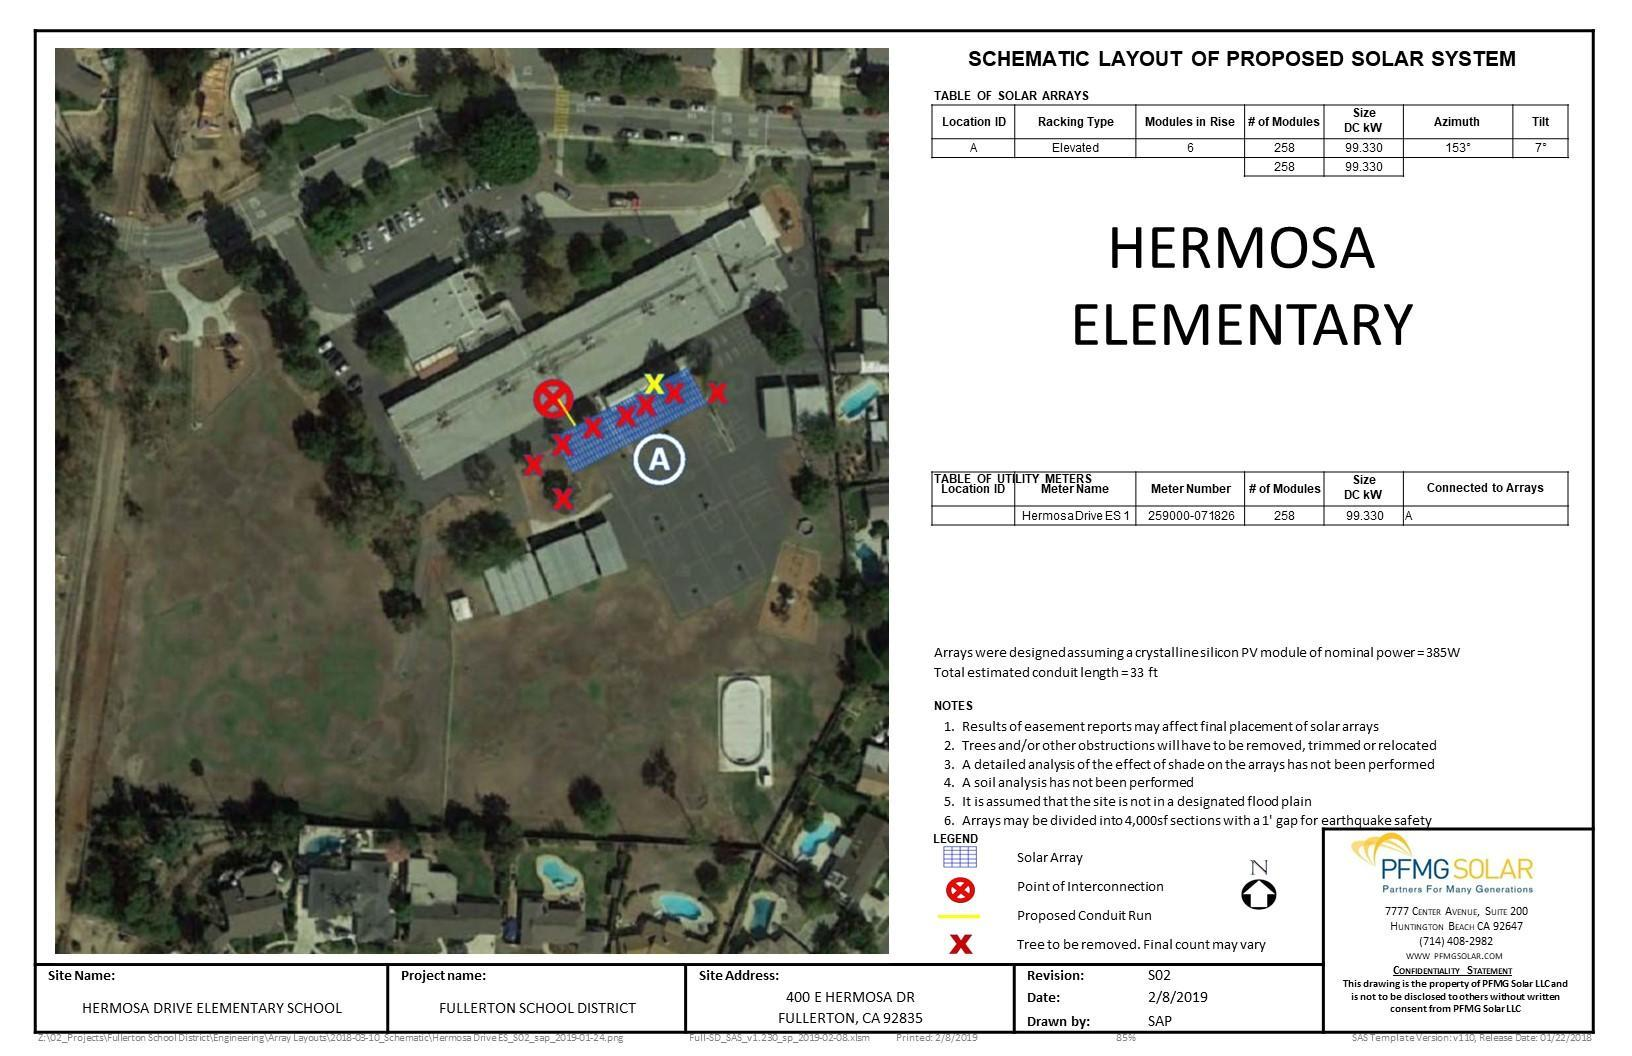 Hermosa Elementary Schematic Layout of Proposed Solar System